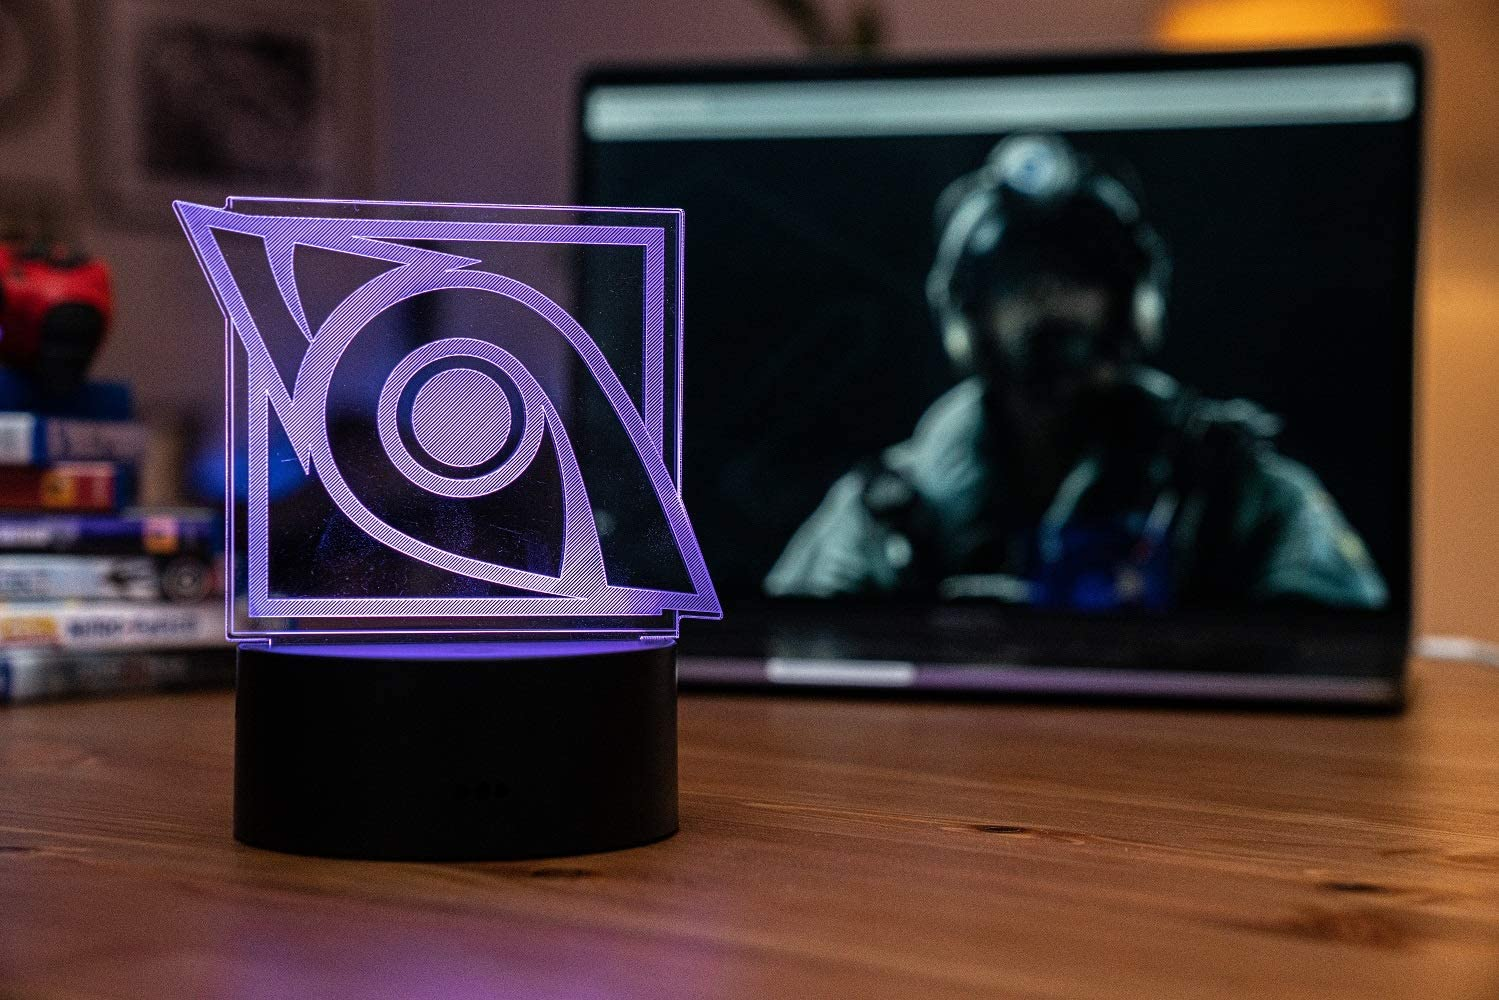 Six Siege LED Lamp - Jackal Operator - Rainbow Six Siege Decor for The Bedroom or Gaming Studio - Color Changing LED Nightlight Great for Cosplay Photoshoots with Any R6 Character